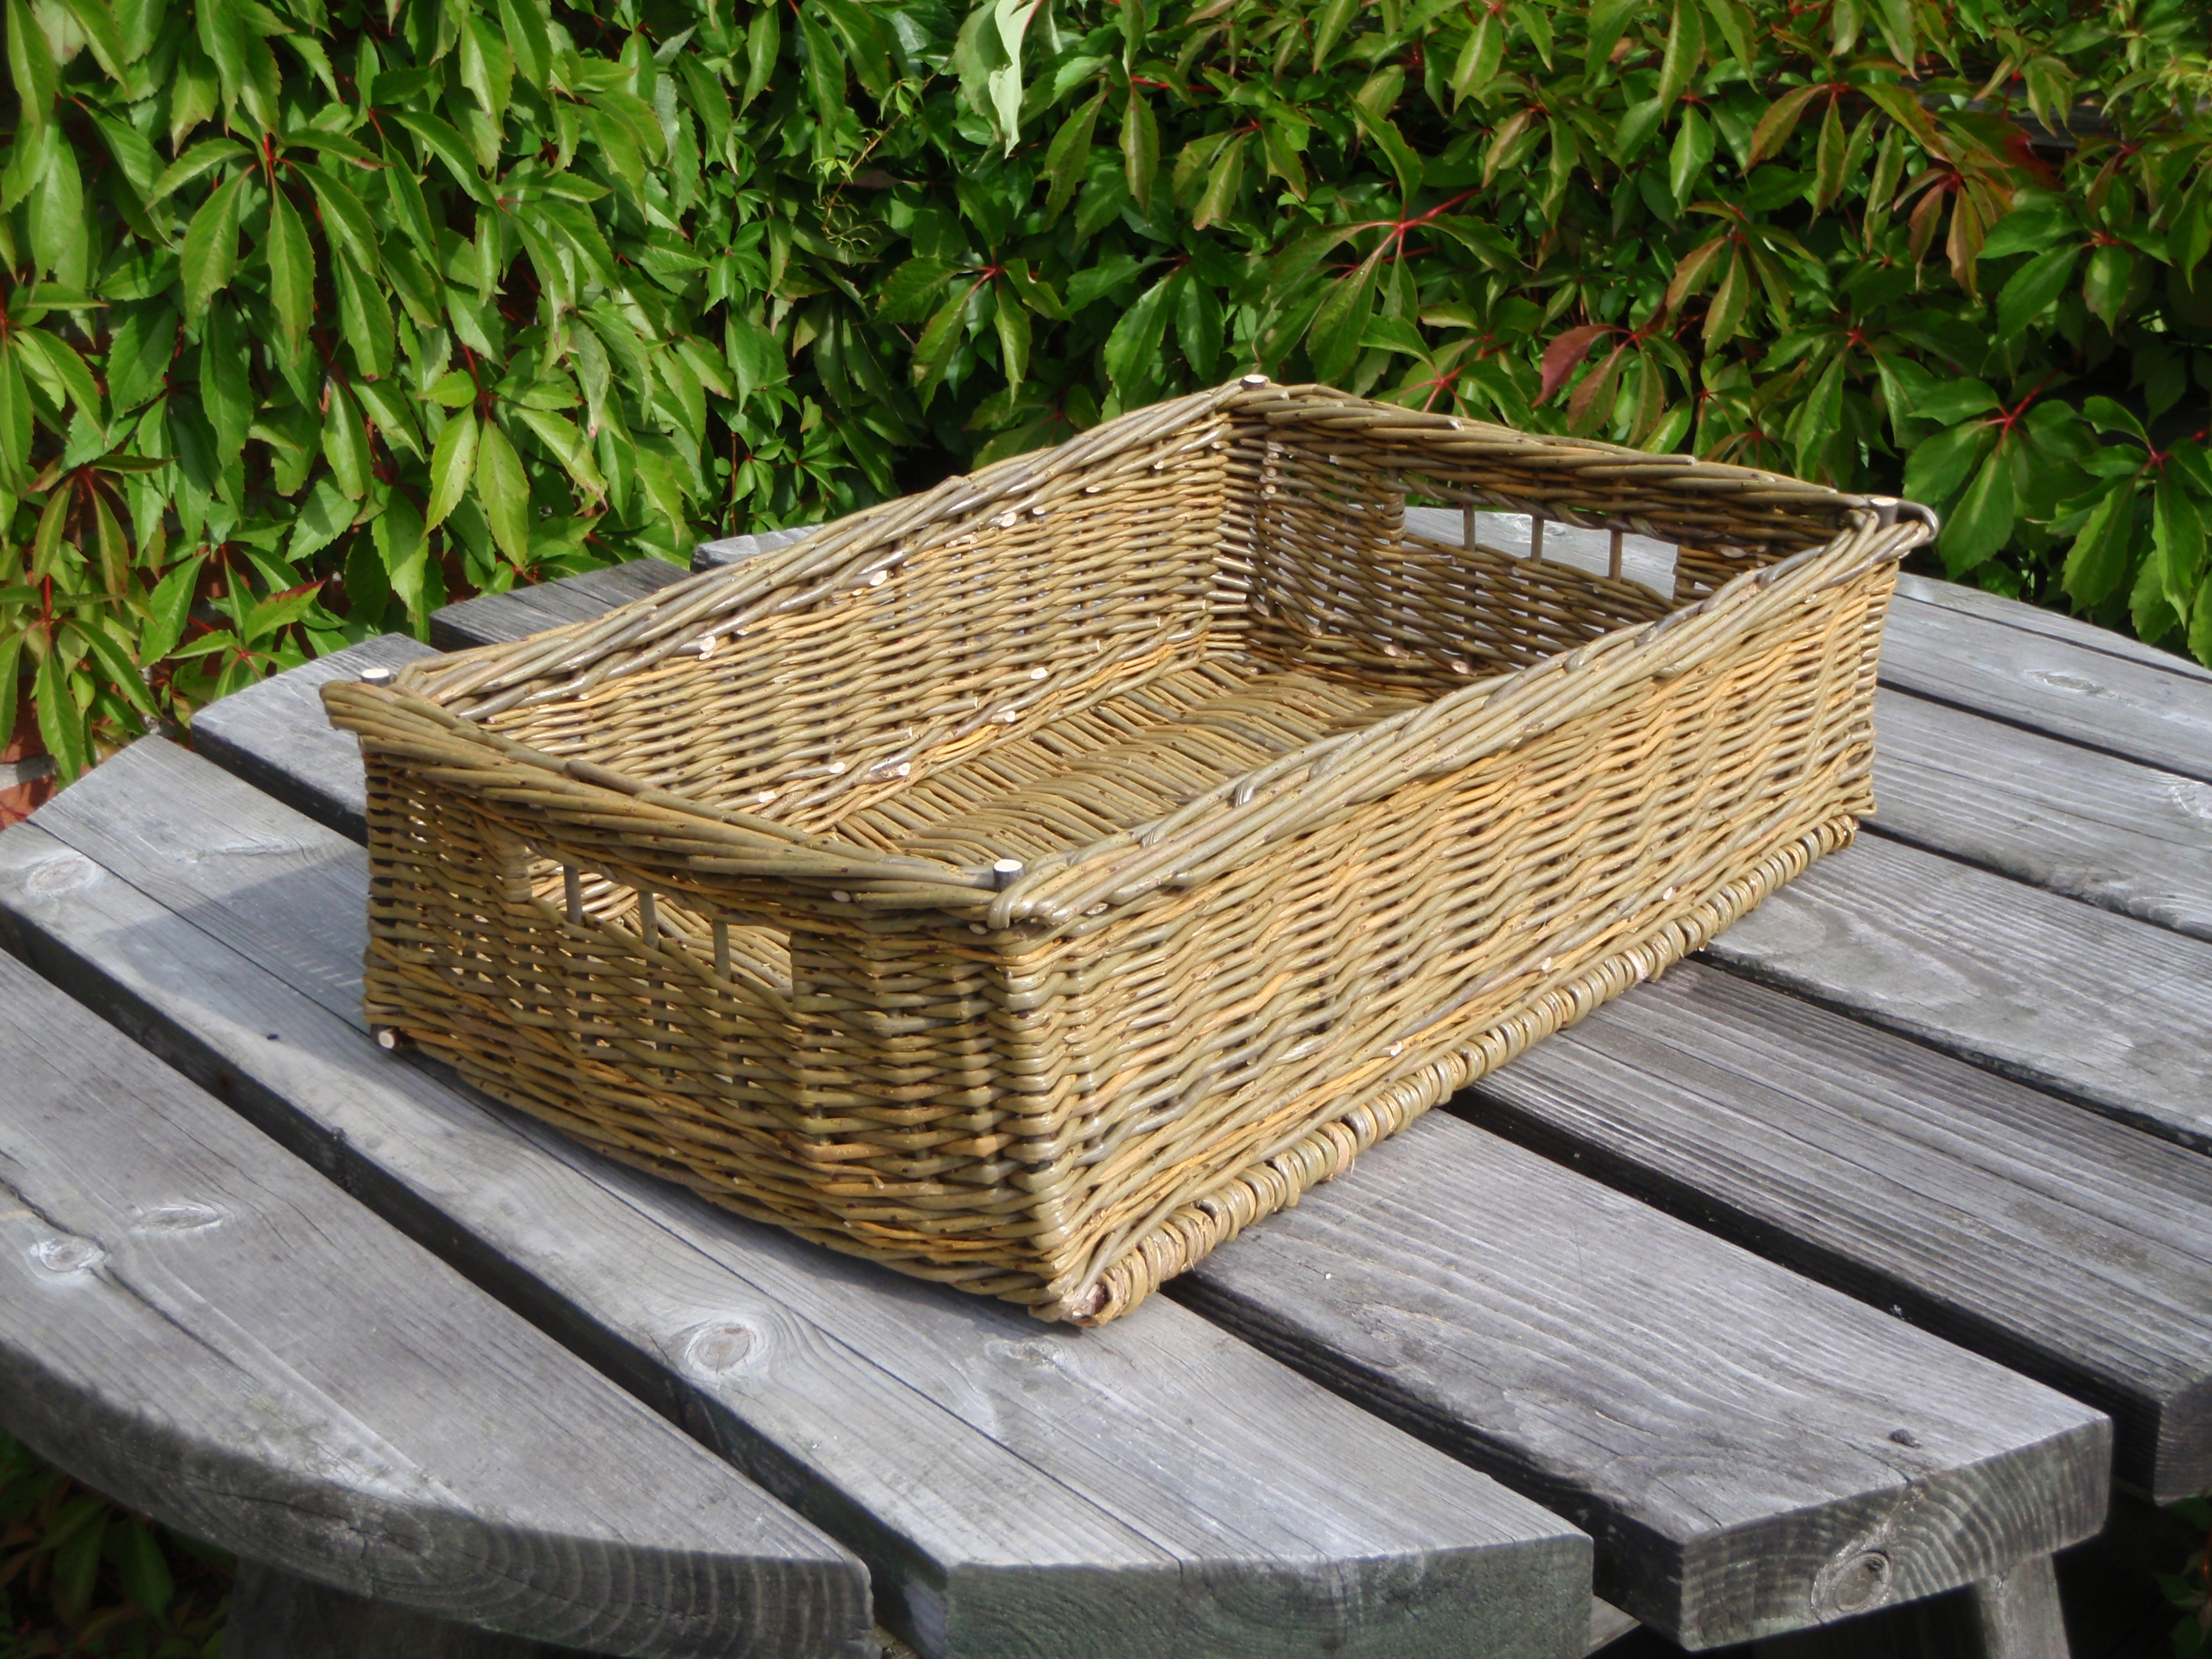 kurv kurvmaker, kurvmakerlærling, pilefletting, pilfletting, kurvmakerskolen, kurvfletting, silja levin, lars levin, skovstuen pil, kurver, levende pil, basket making, basketmaker, willoweaver, willow